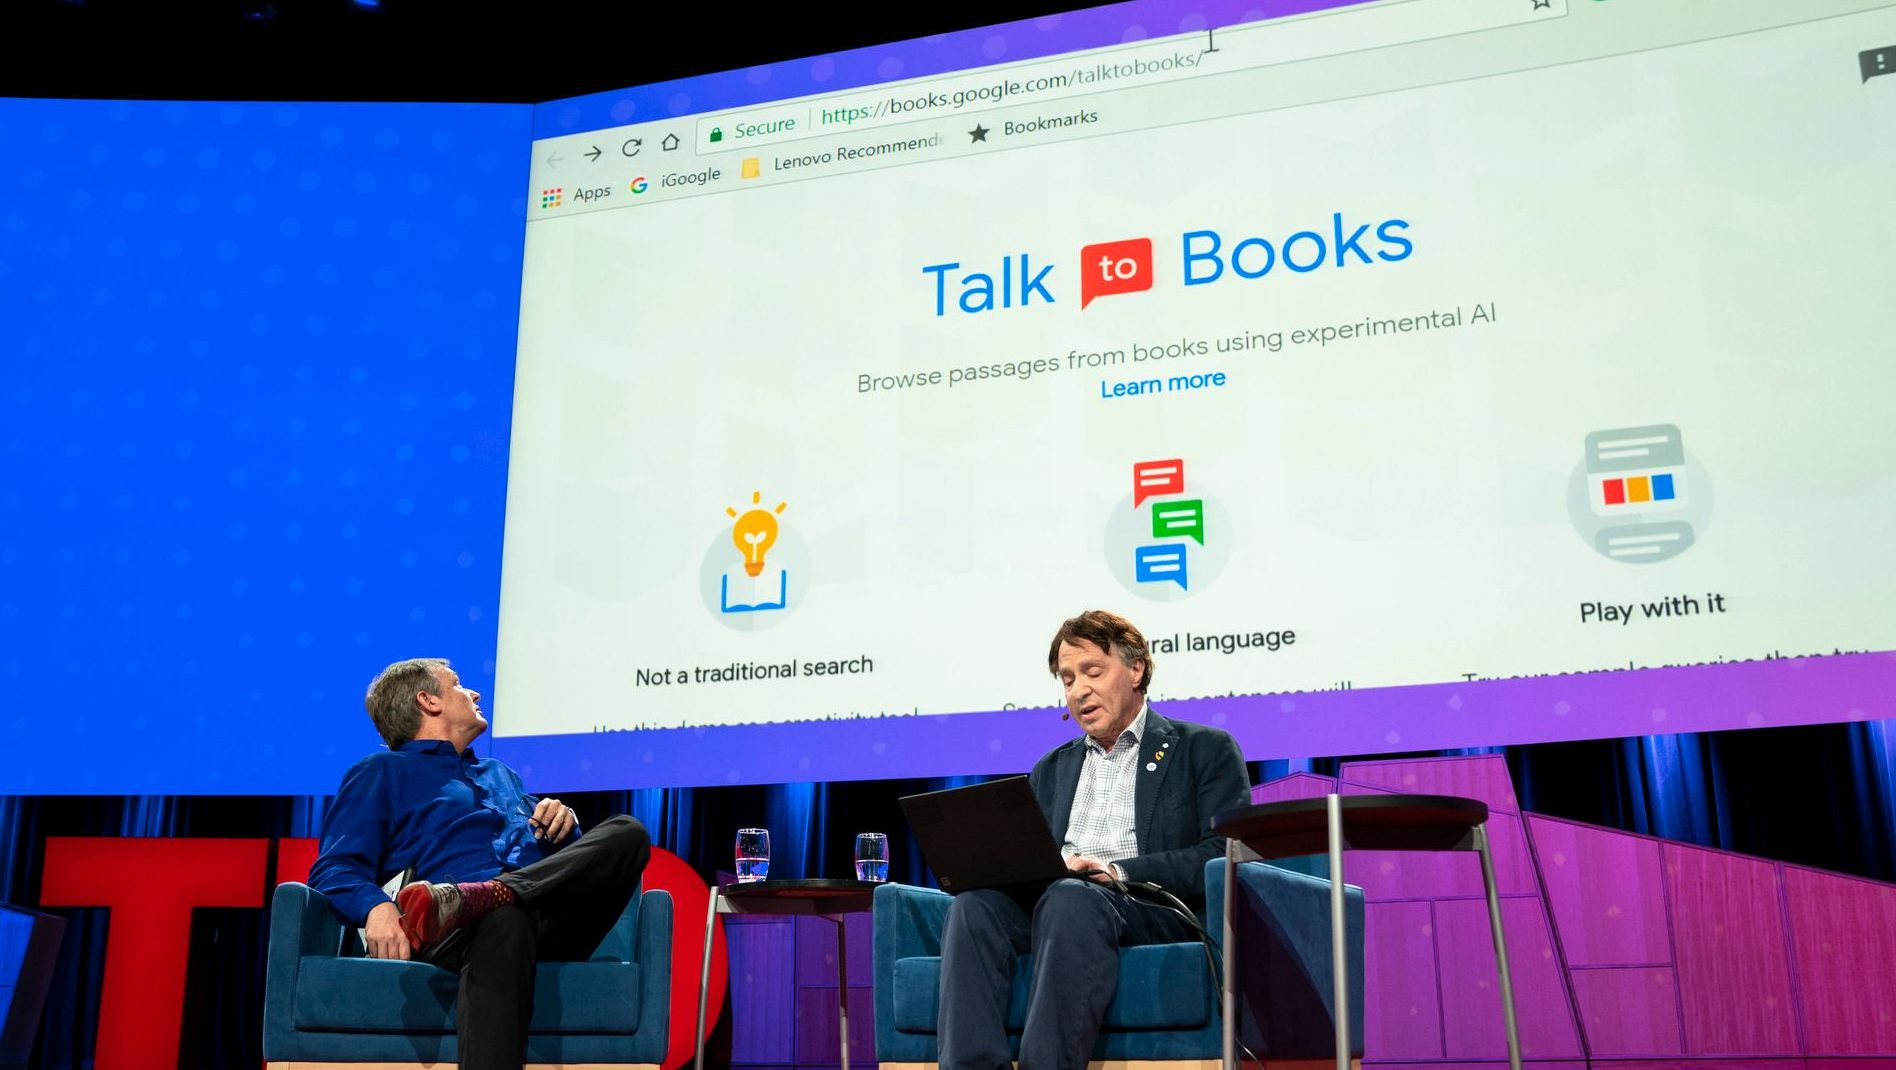 Will AI usher in the singularity? Chris Anderson interviewing Ray Kurzweil TED2018 - The Age of Amazement, April 10 - 14, 2018, Vancouver, BC, Canada. Photo: Bret Hartman / TED